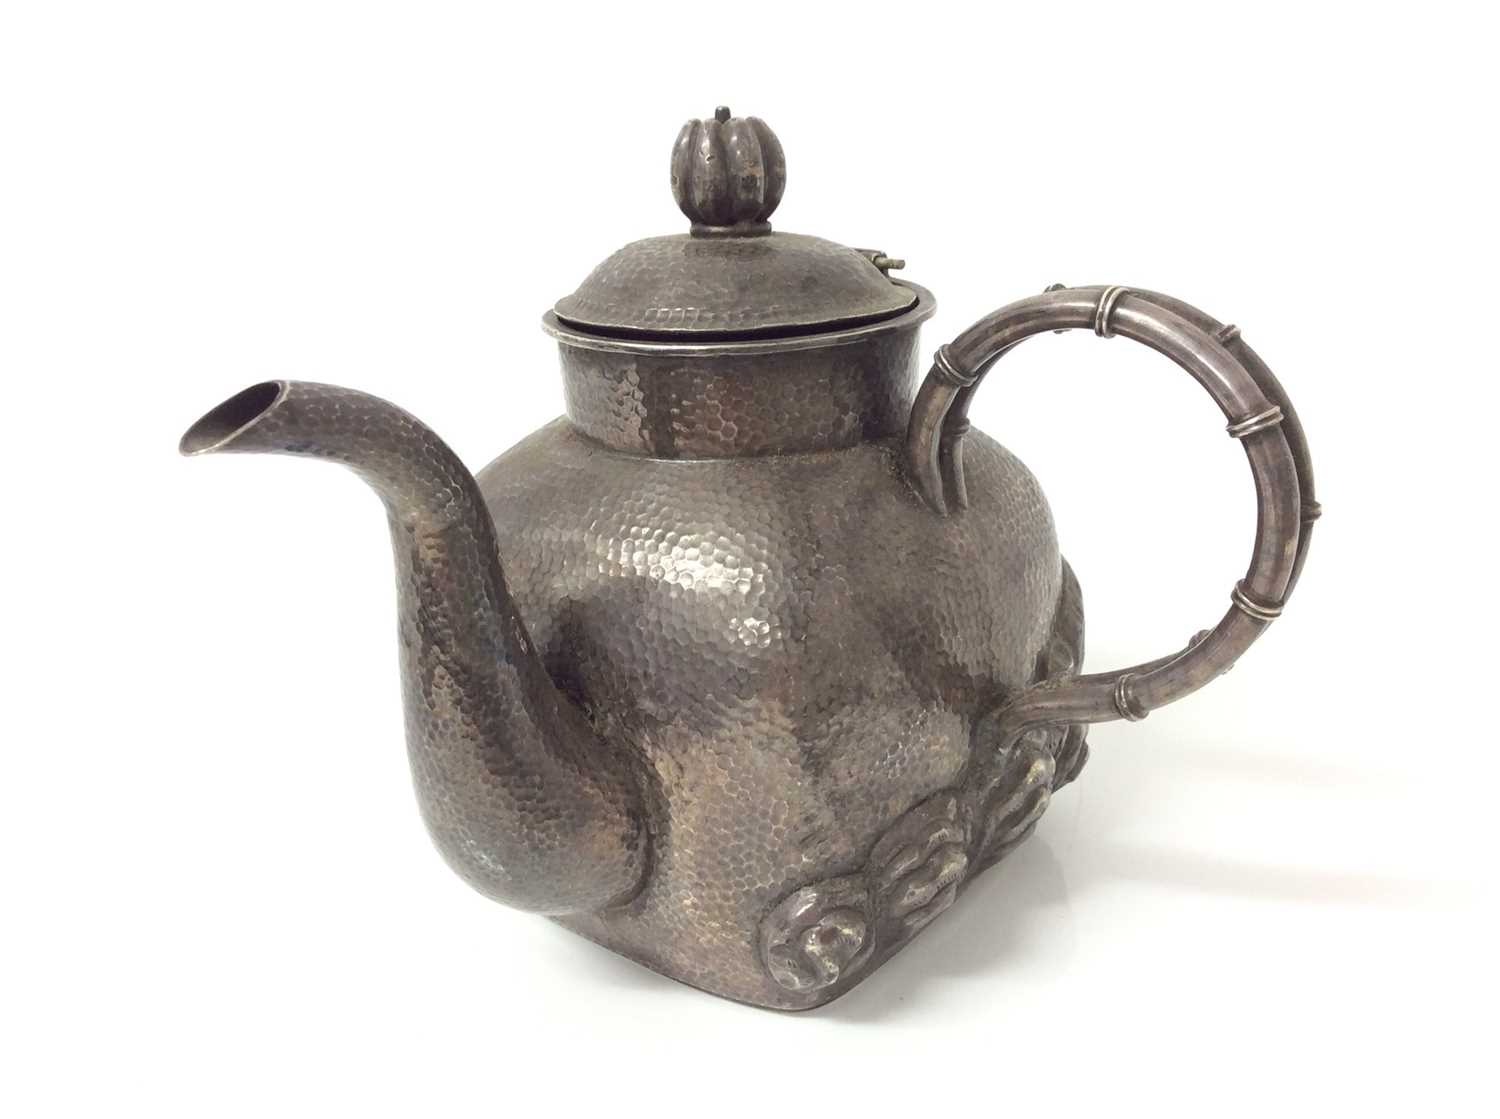 Chinese silver teapot and jug - Image 2 of 12